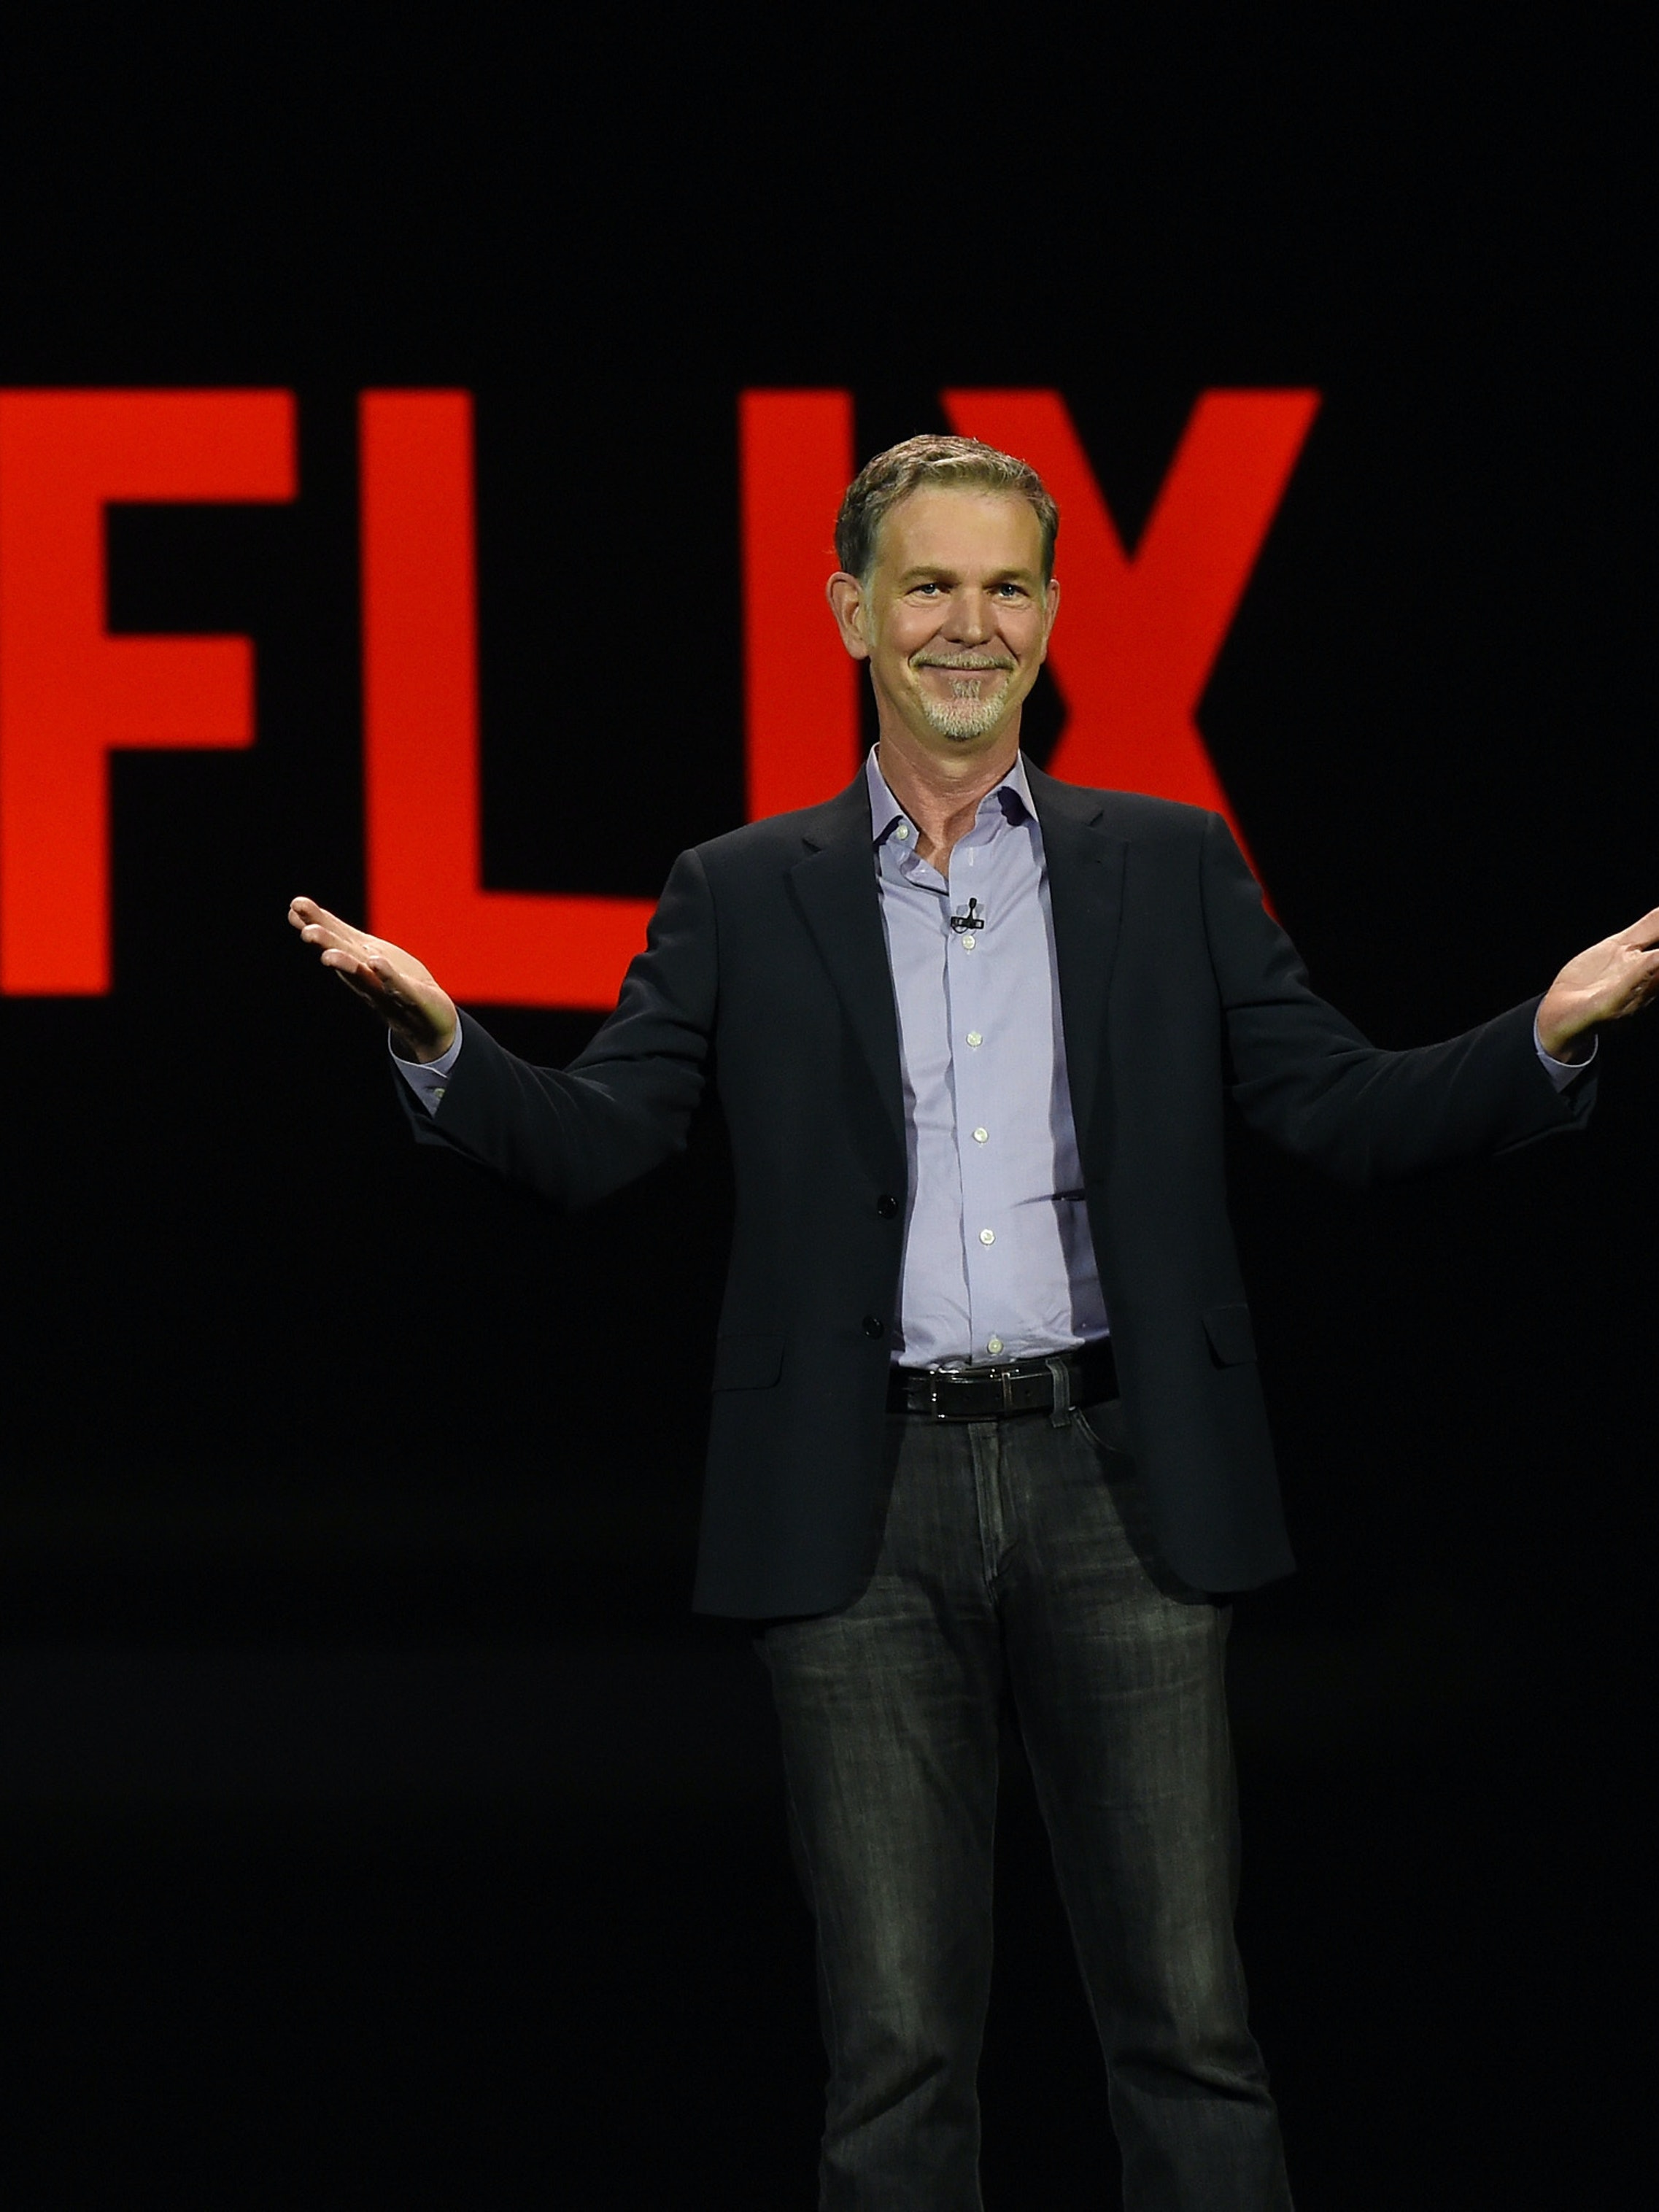 LAS VEGAS, NV - JANUARY 06:  Netflix CEO Reed Hastings delivers a keynote address at CES 2016 at The Venetian Las Vegas on January 6, 2016 in Las Vegas, Nevada. CES, the world's largest annual consumer technology trade show, runs through January 9 and is expected to feature 3,600 exhibitors showing off their latest products and services to more than 150,000 attendees.  (Photo by Ethan Miller/Getty Images)